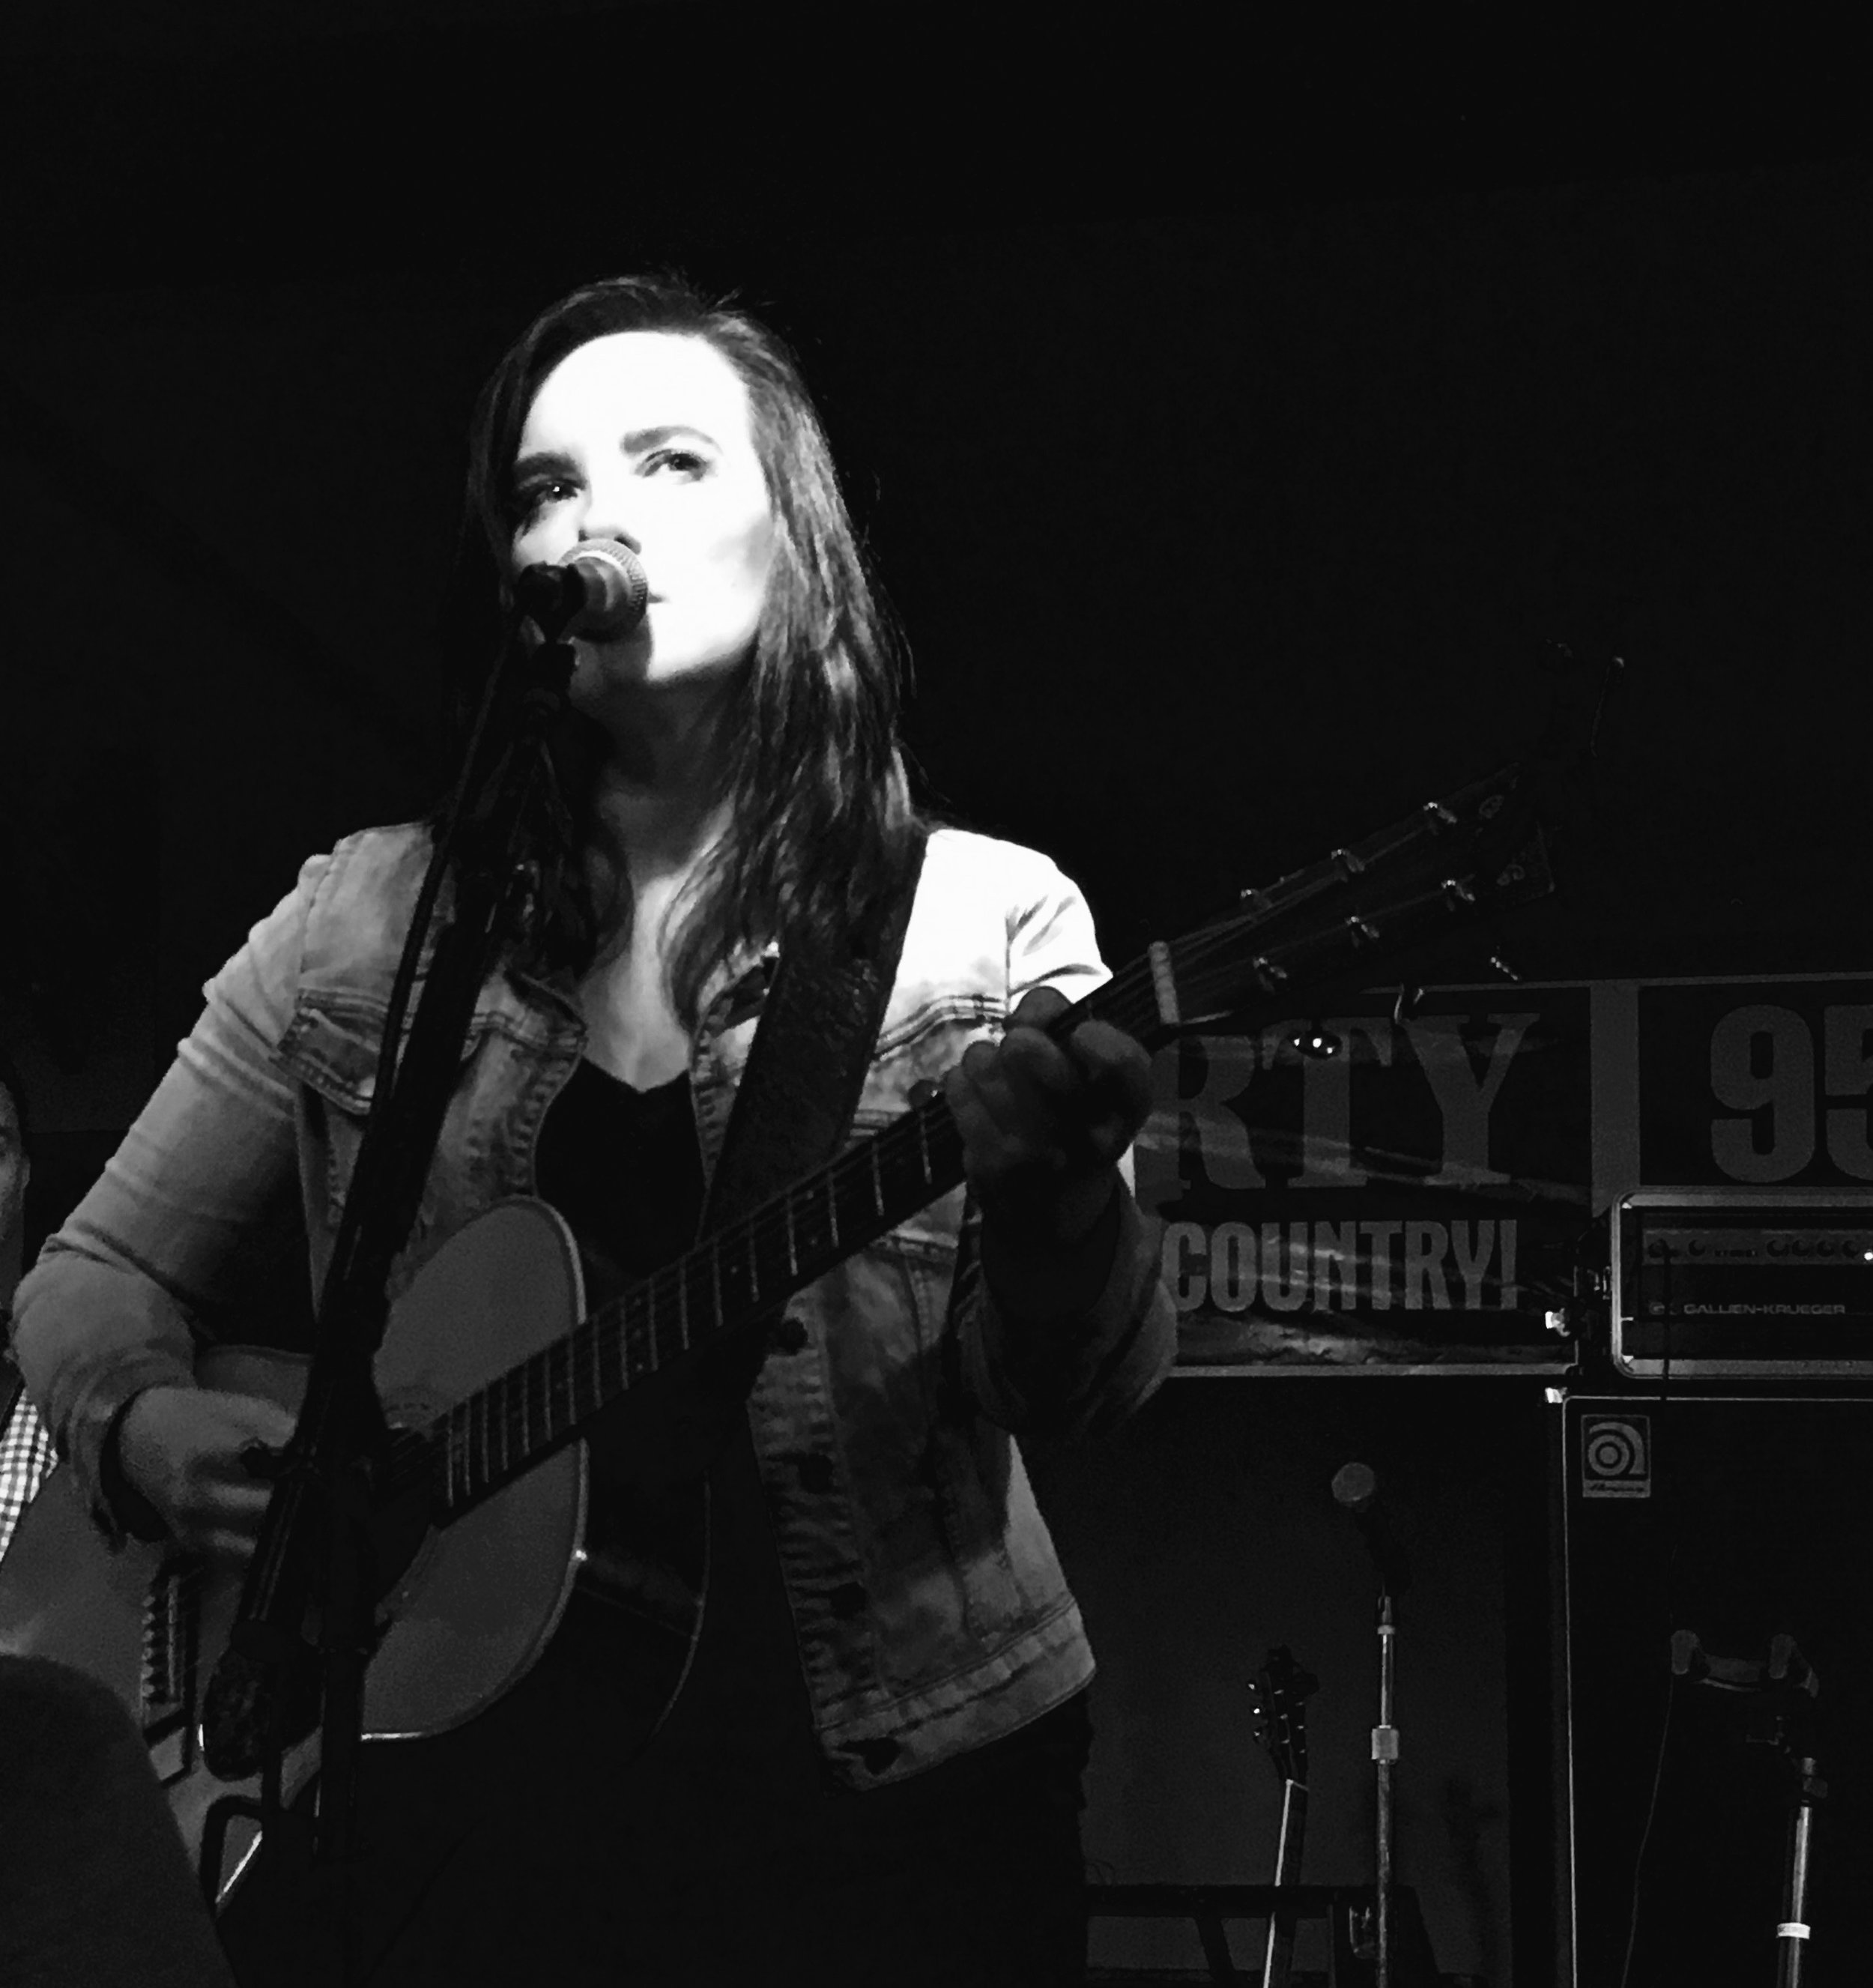 Brandy Clark - August 17, 2016 at the Rodeo Club in San Jose, CA